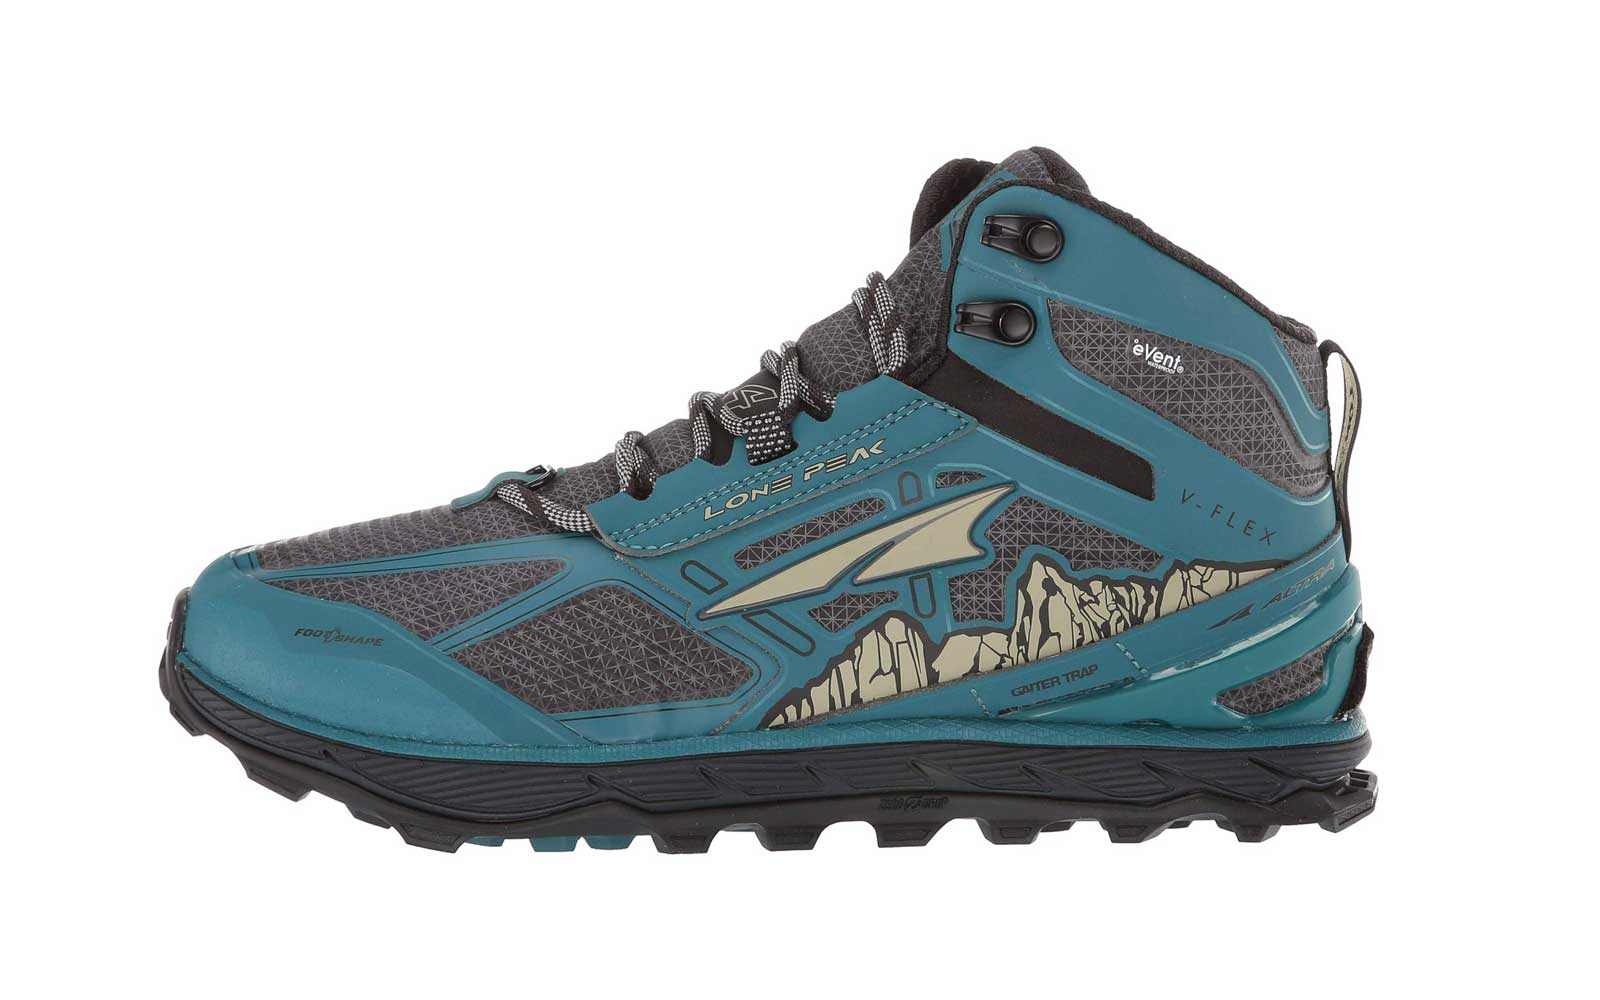 2c571ab26420a The 20 Best Hiking Shoes and Boots for Women in 2019 | Travel + Leisure